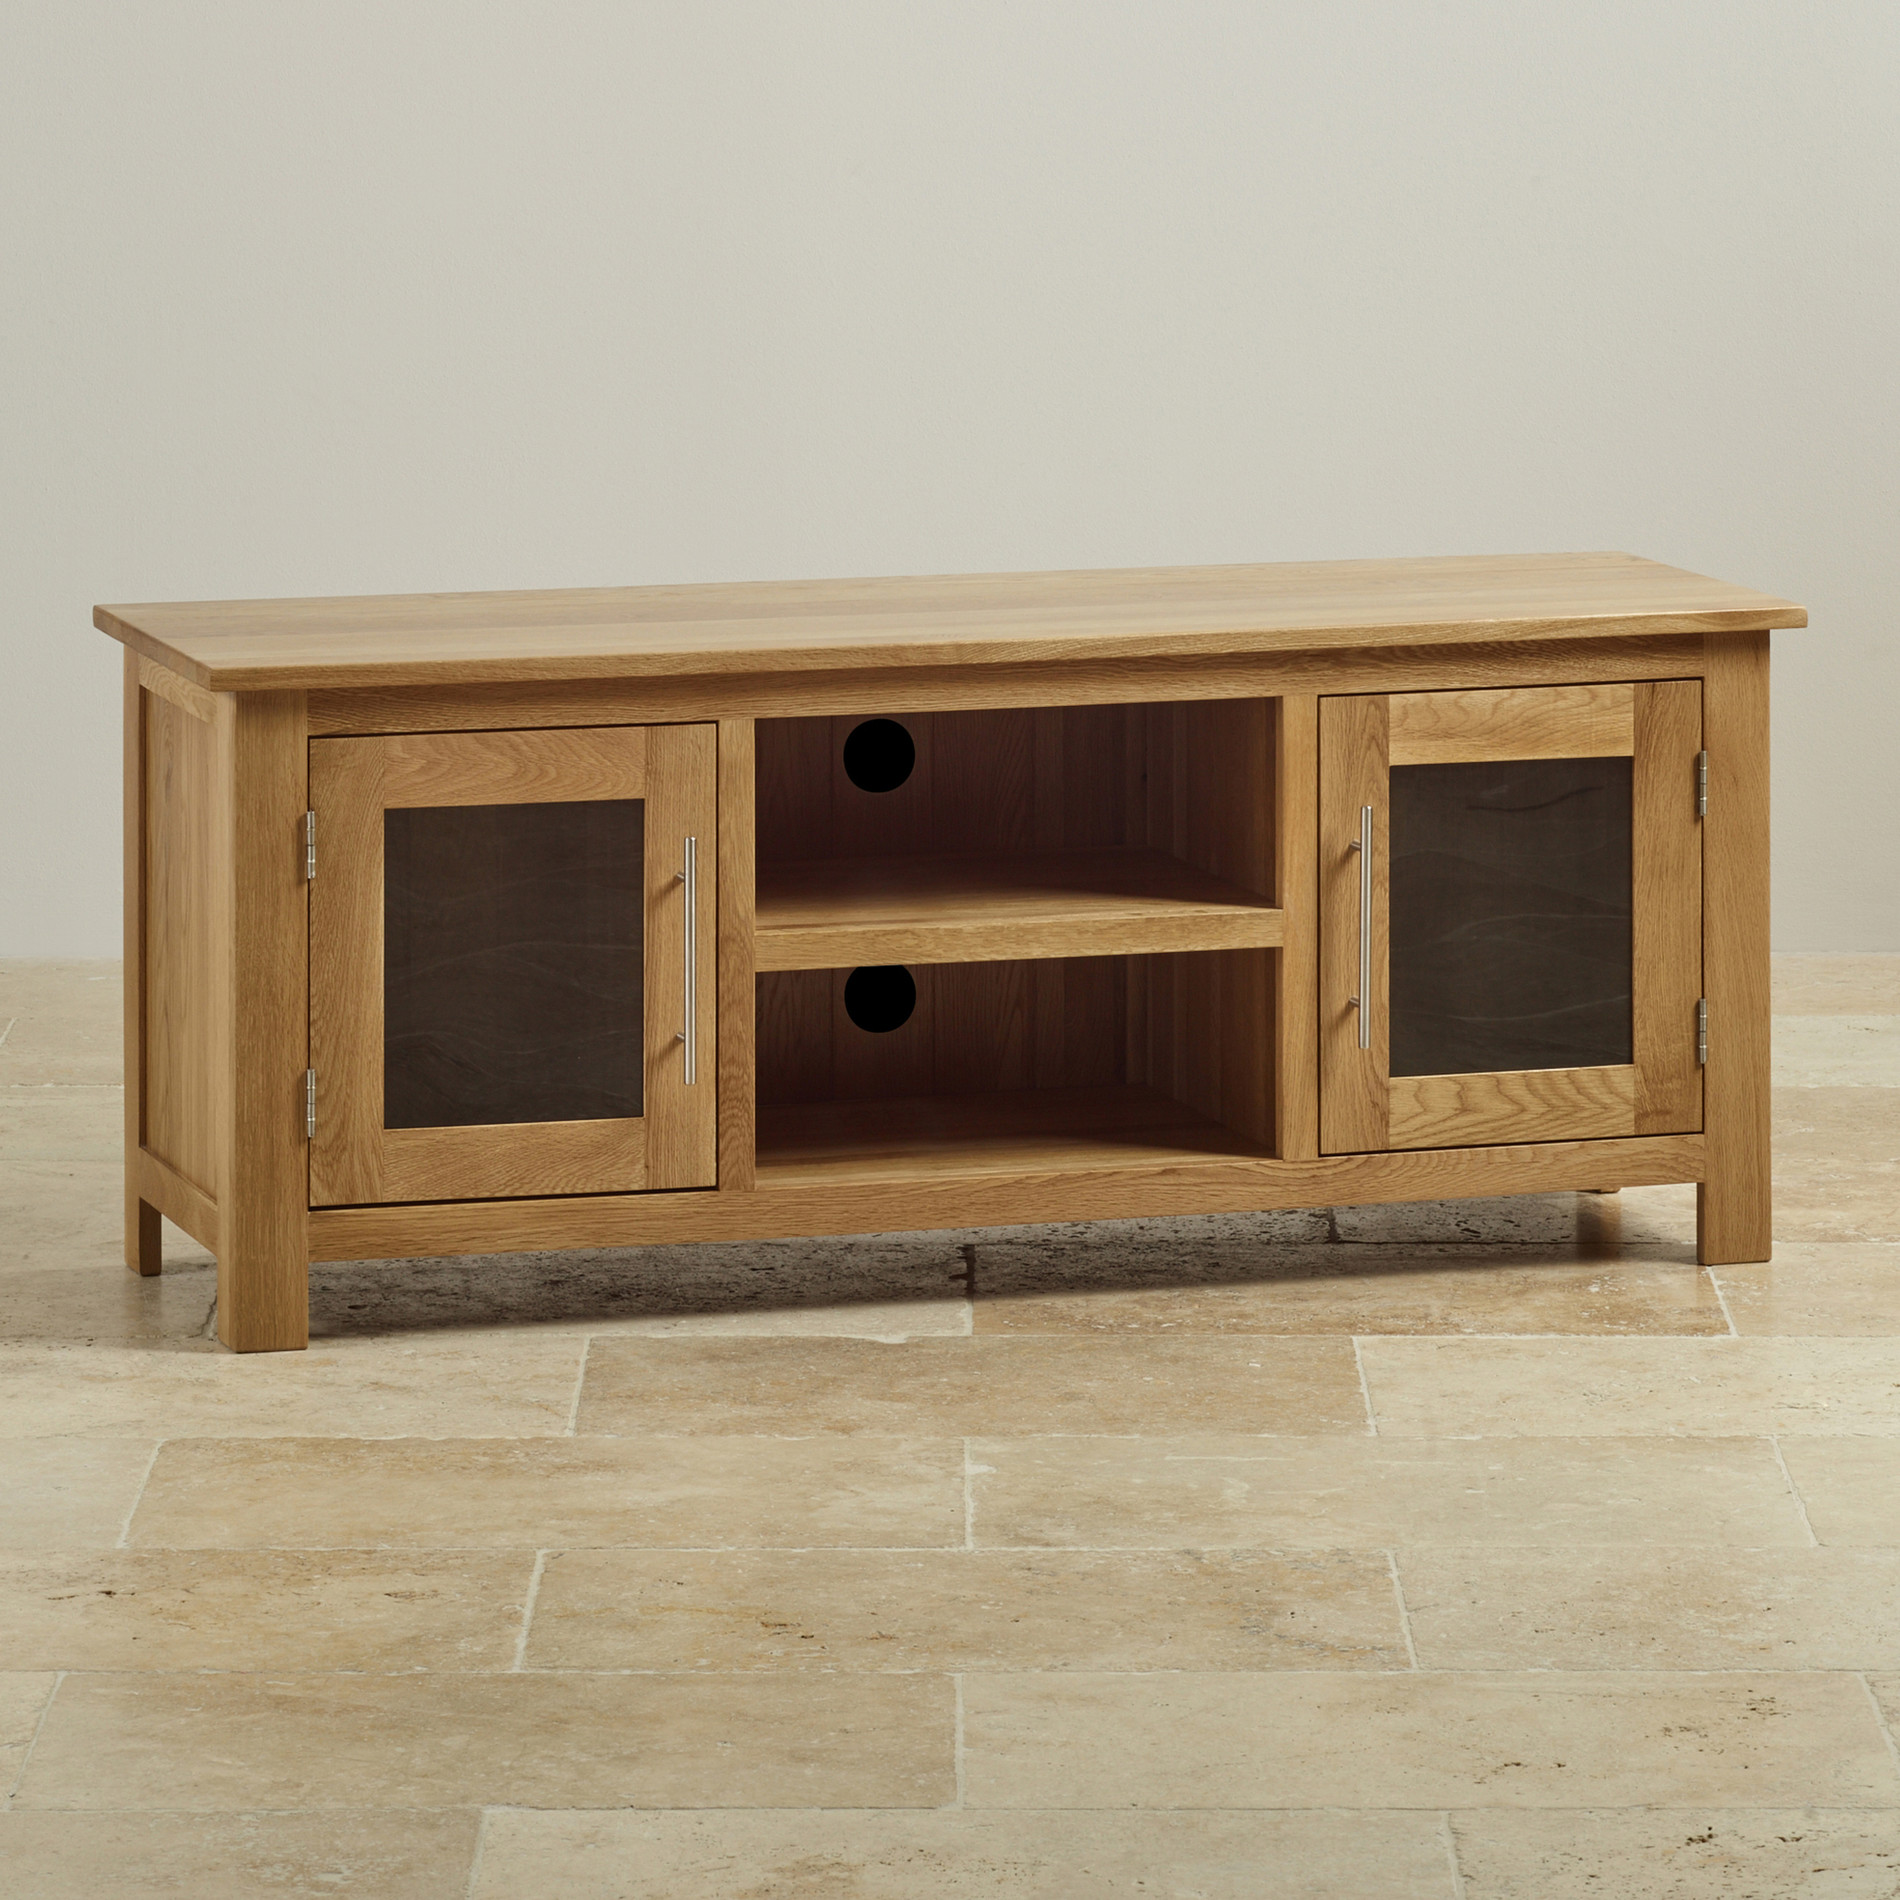 Rivermead tv cabinet in solid oak oak furniture land for Oak furniture land